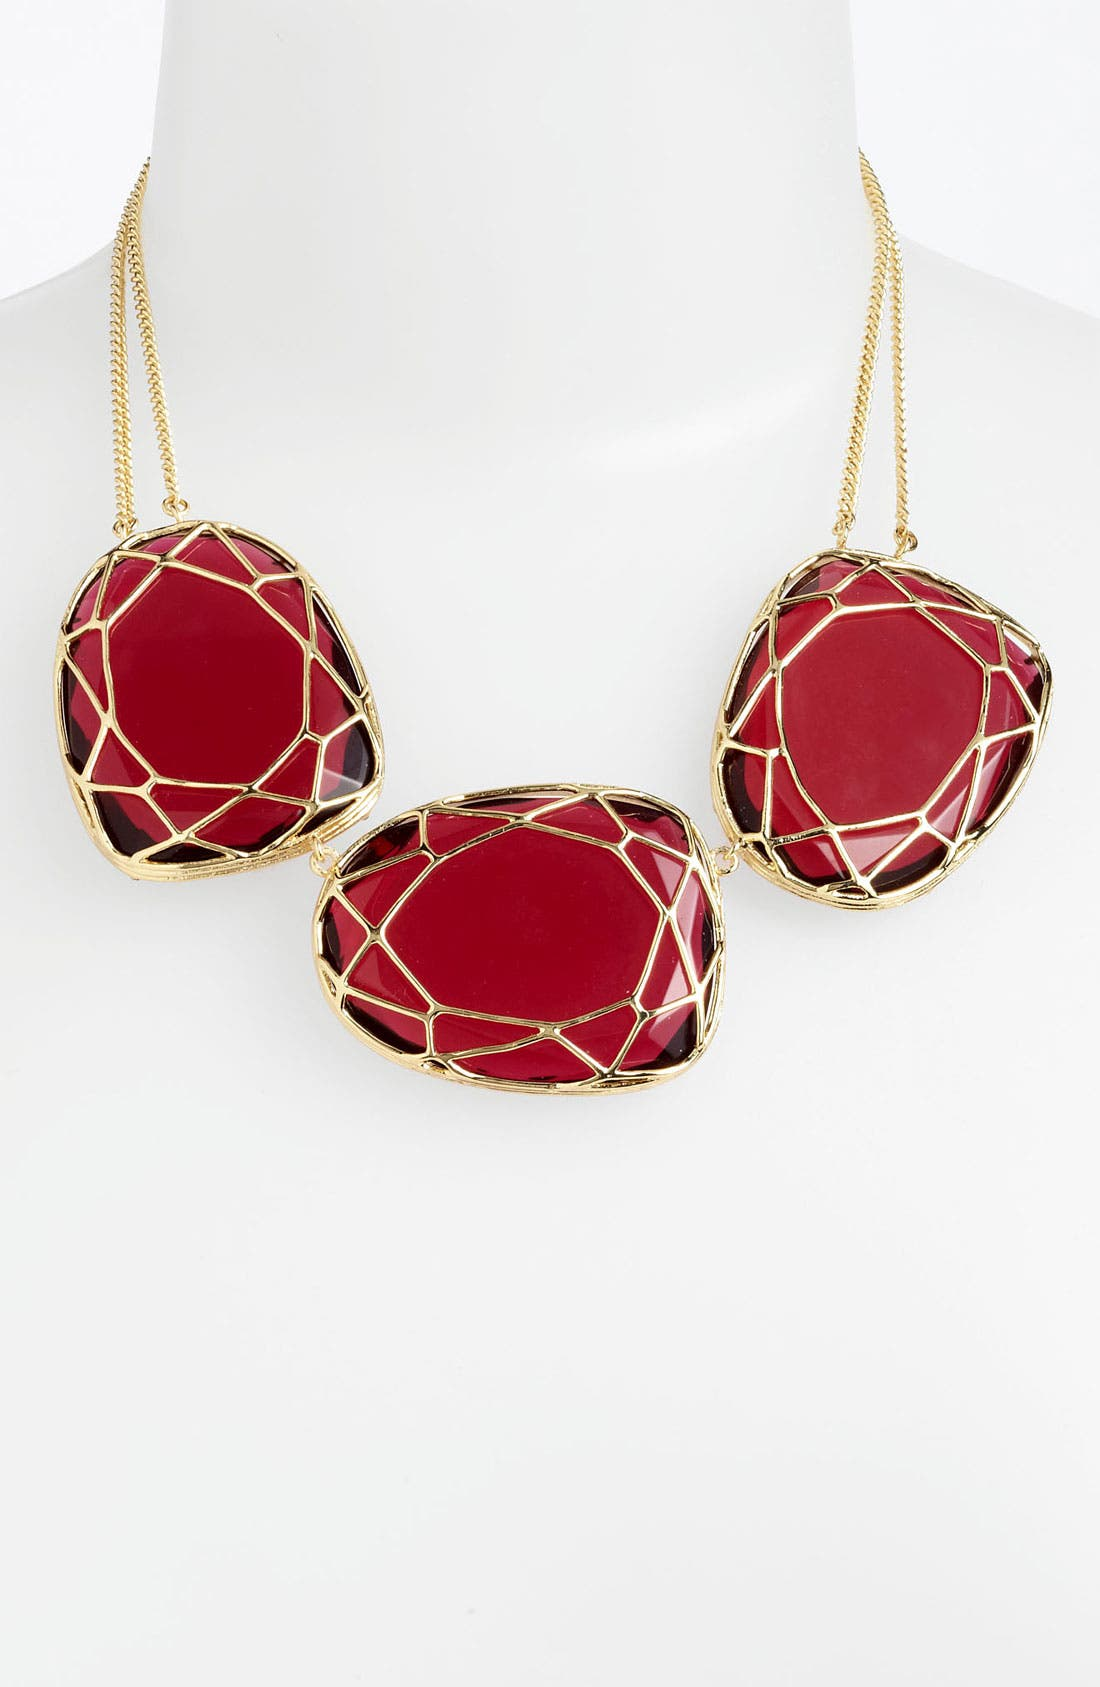 Main Image - Kendra Scott 'Marcella' Reversible Statement Necklace